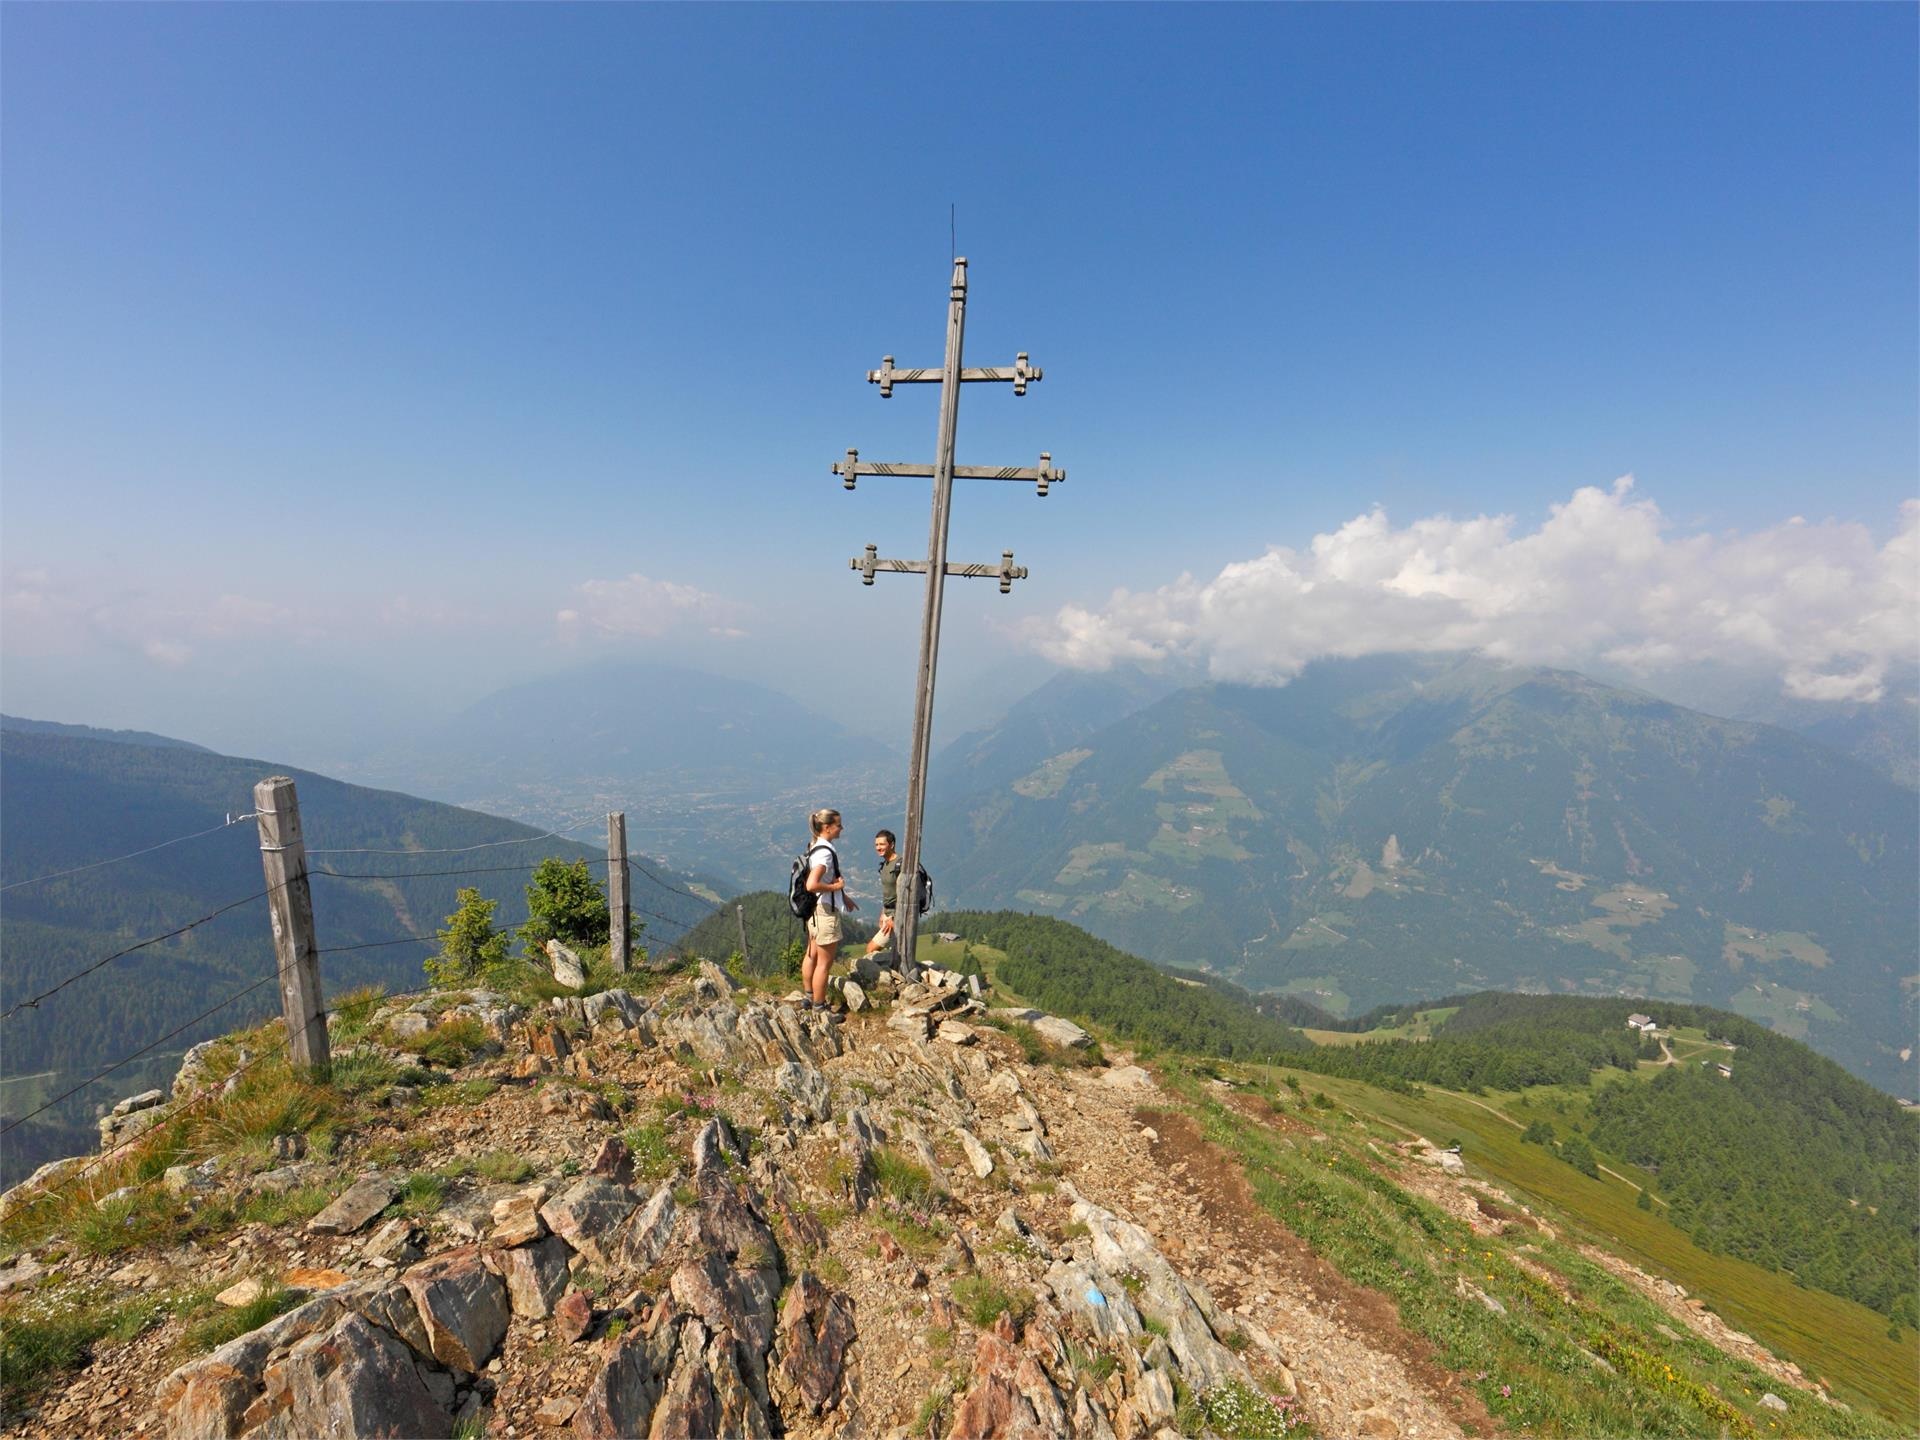 Mountain tour over the Hönigspitze Peak (2.695 m) to Punta Civina